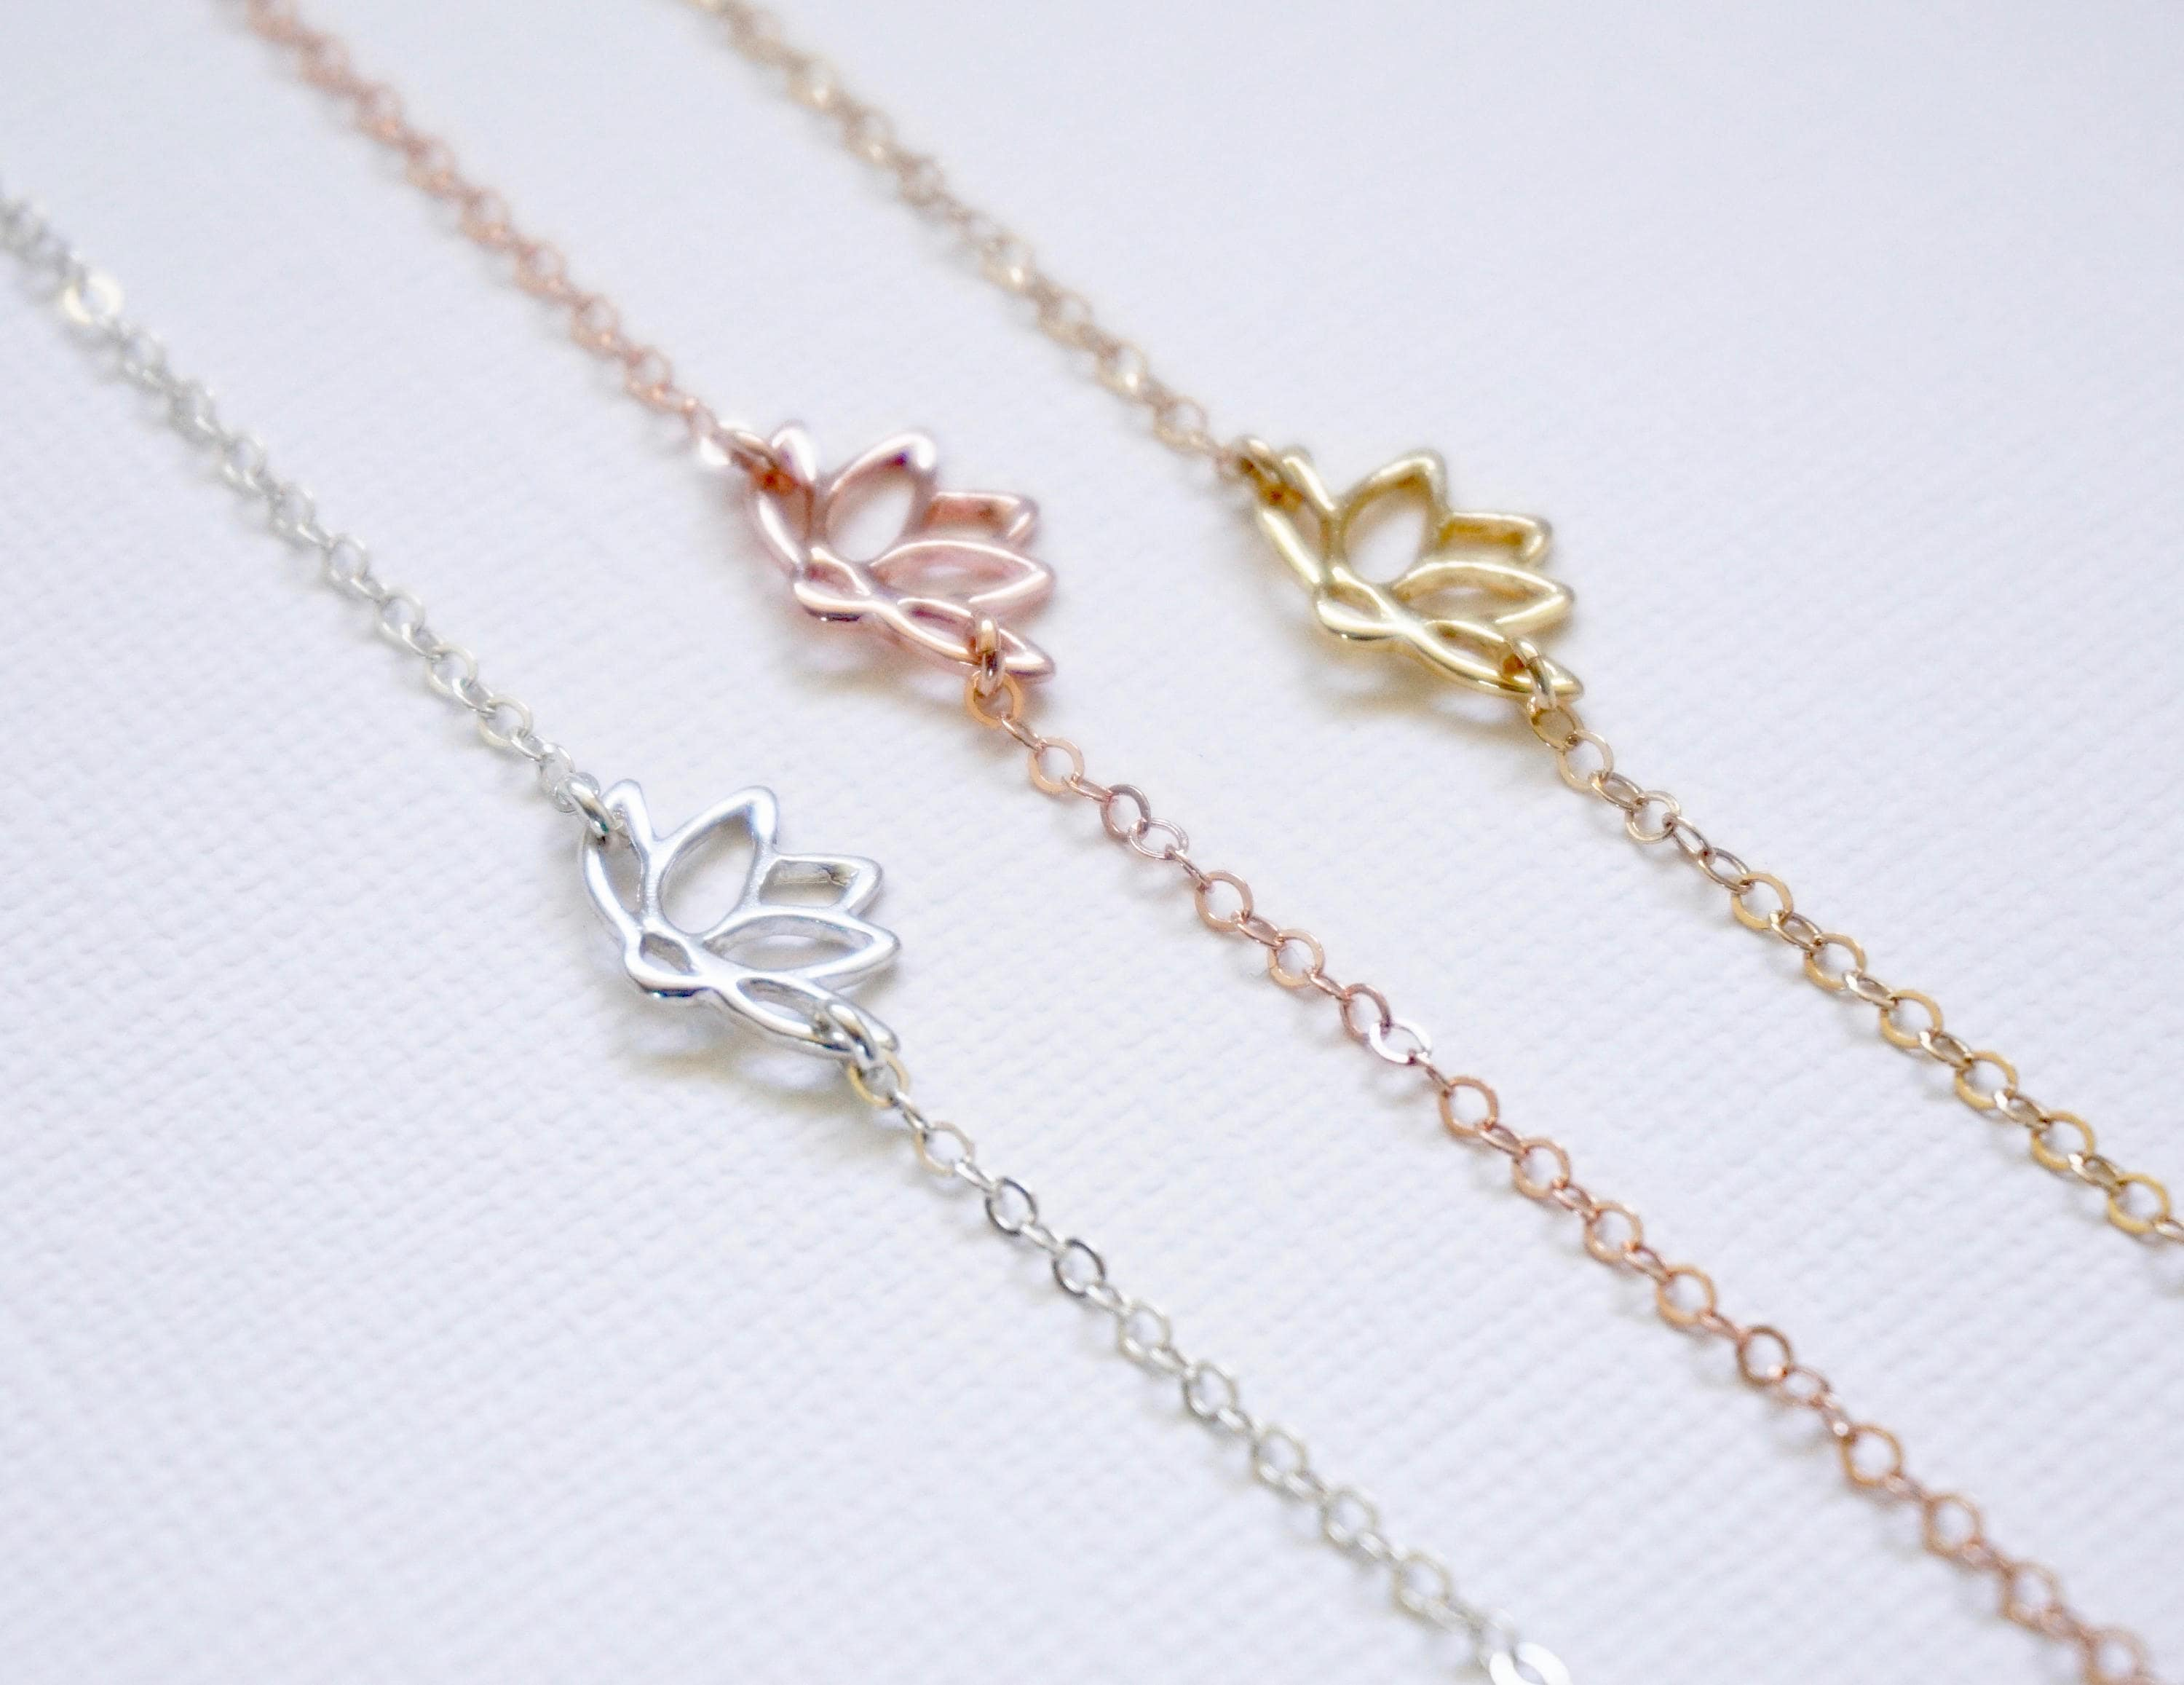 flower kelim products necklace jewelry design lotus